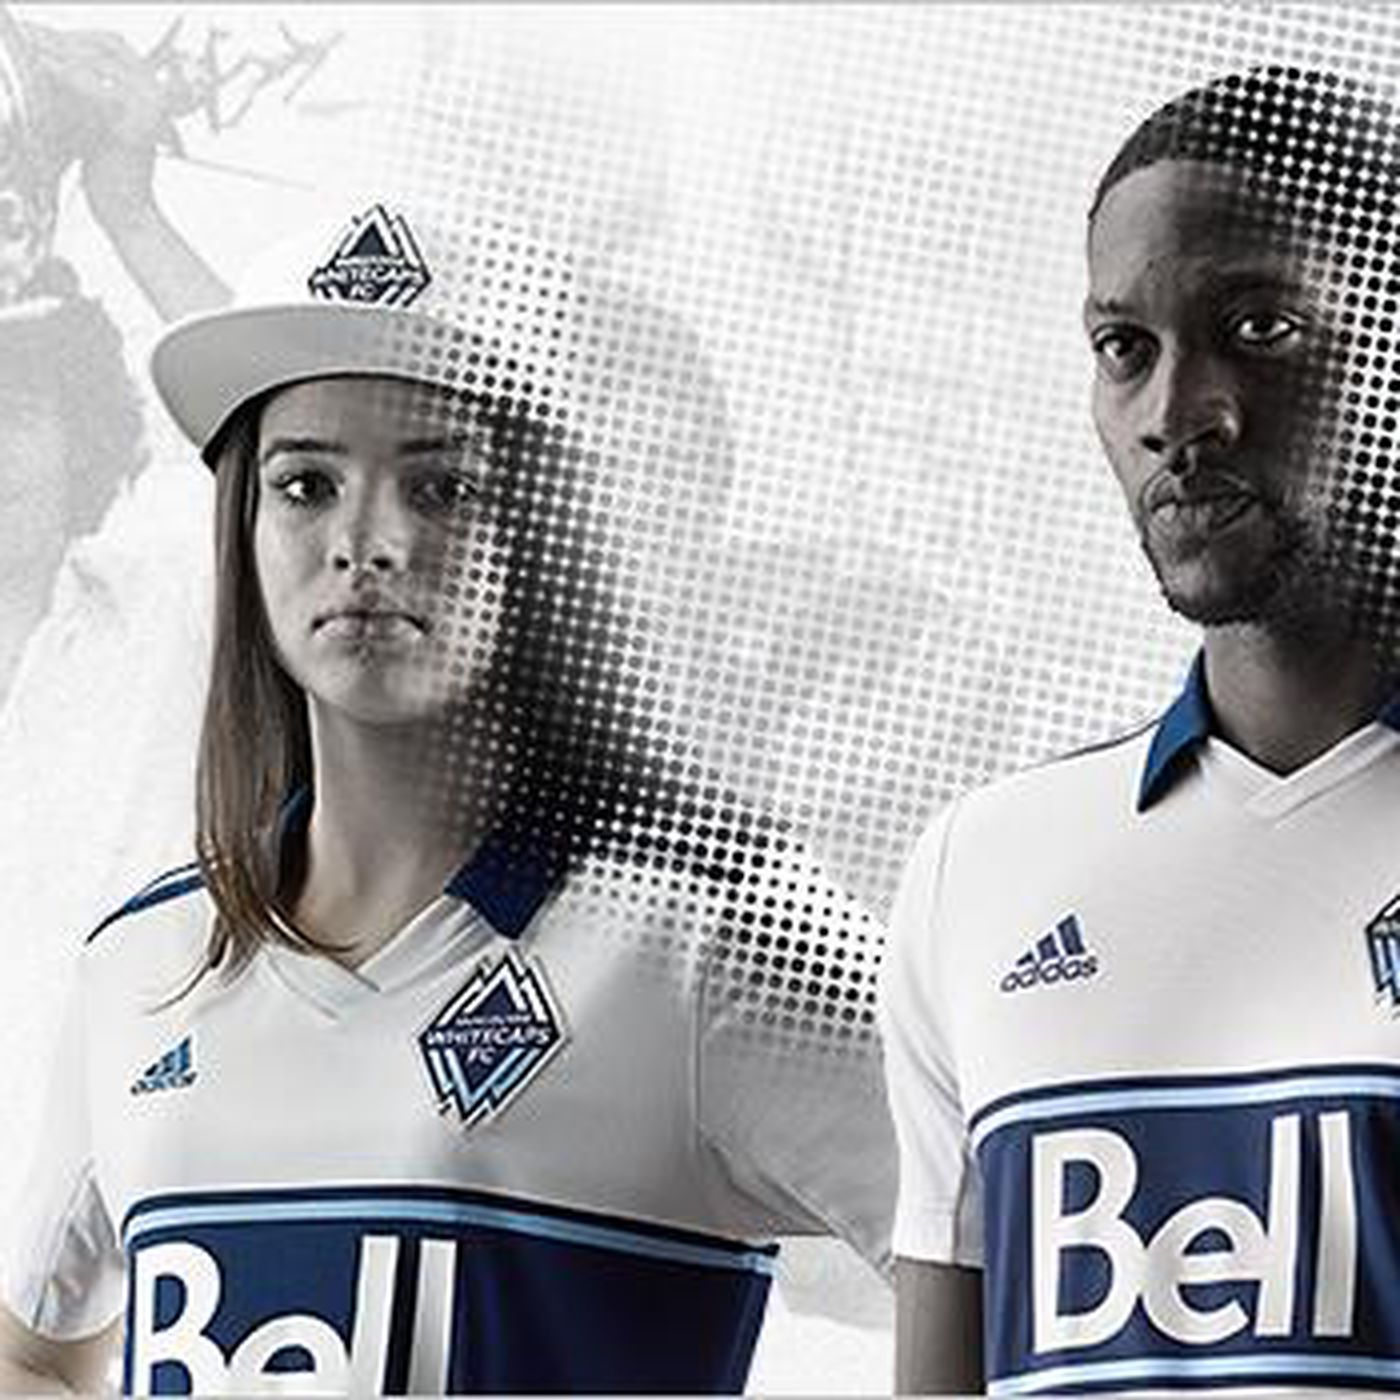 4e5debdc9 A Recap of the Last Few Days in Whitecaps Land - Eighty Six Forever